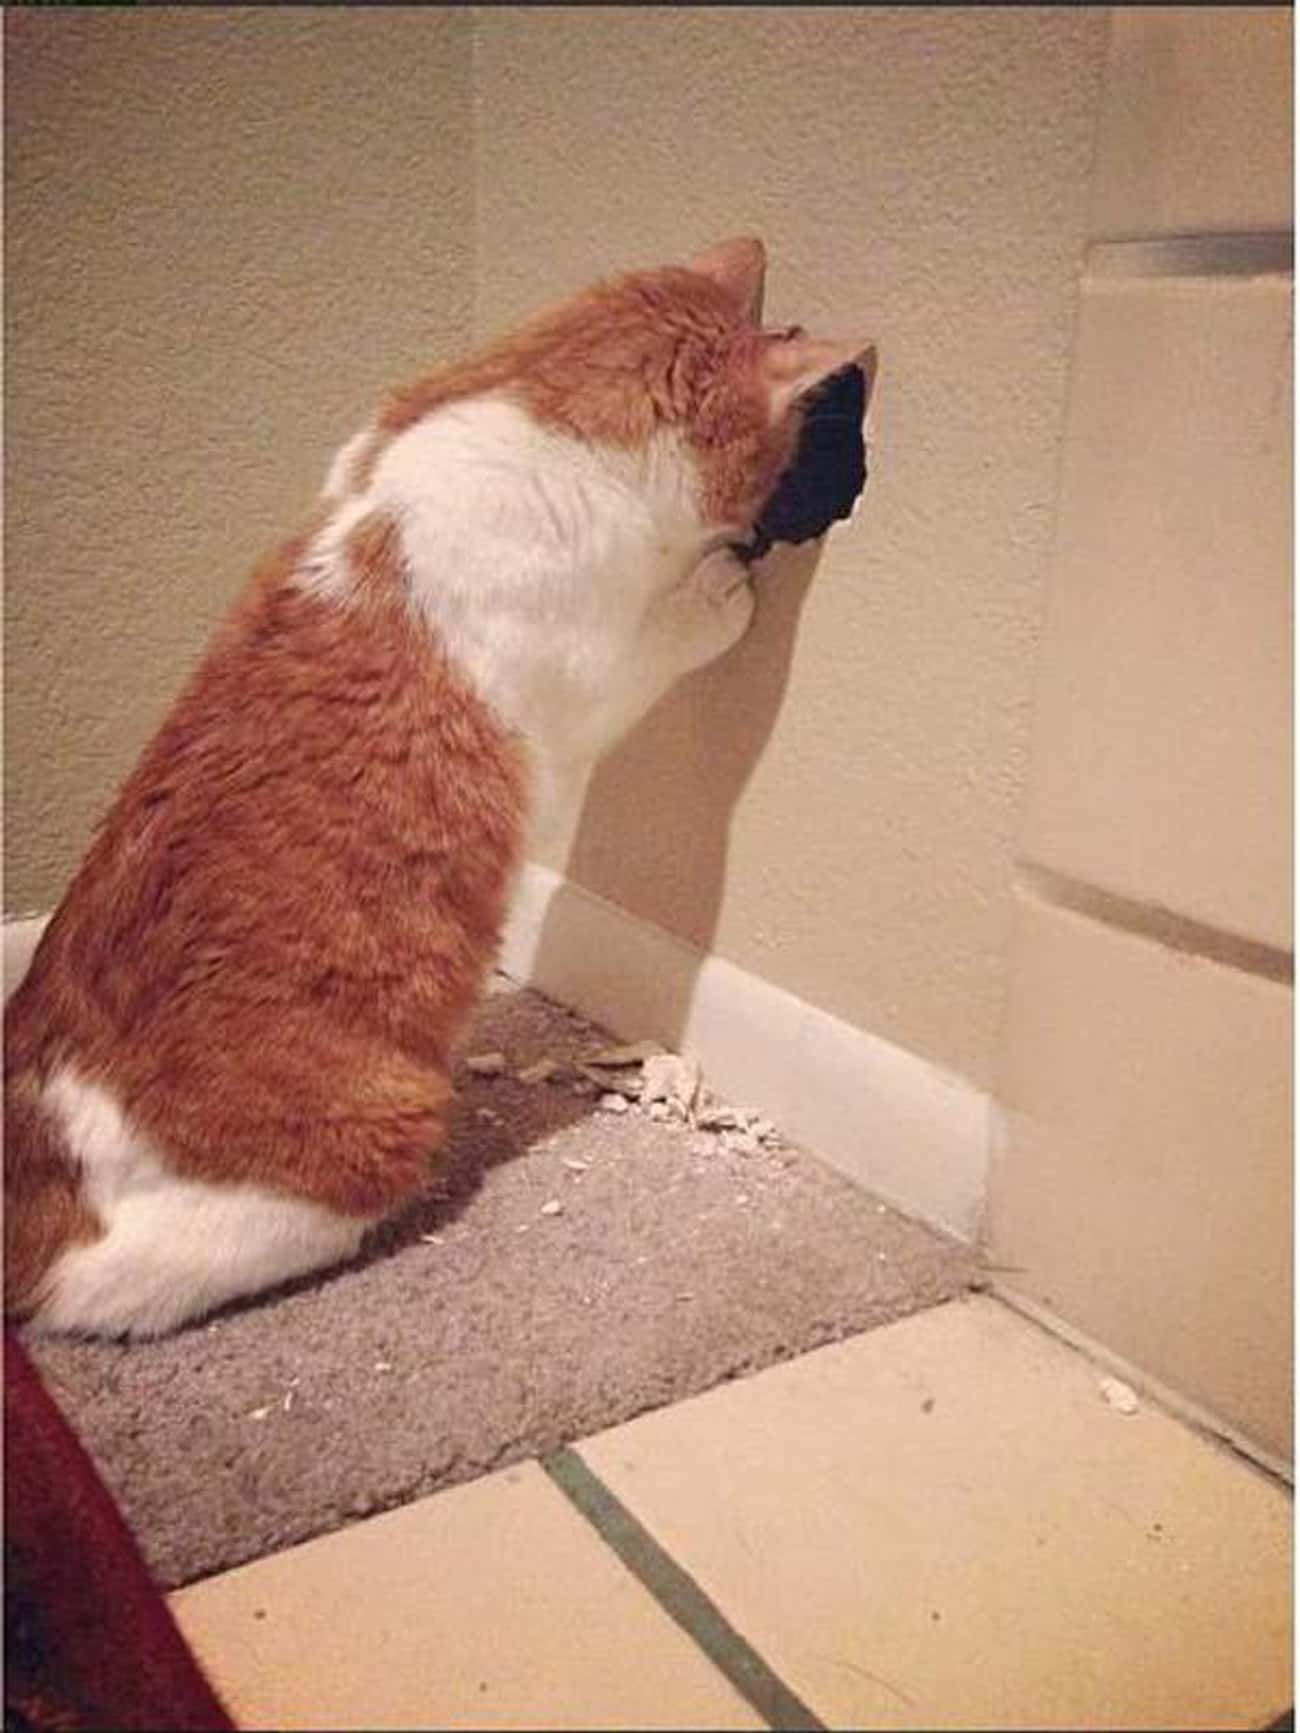 The Hole In The Wall is listed (or ranked) 3 on the list 24 Things These Cats Are Looking At